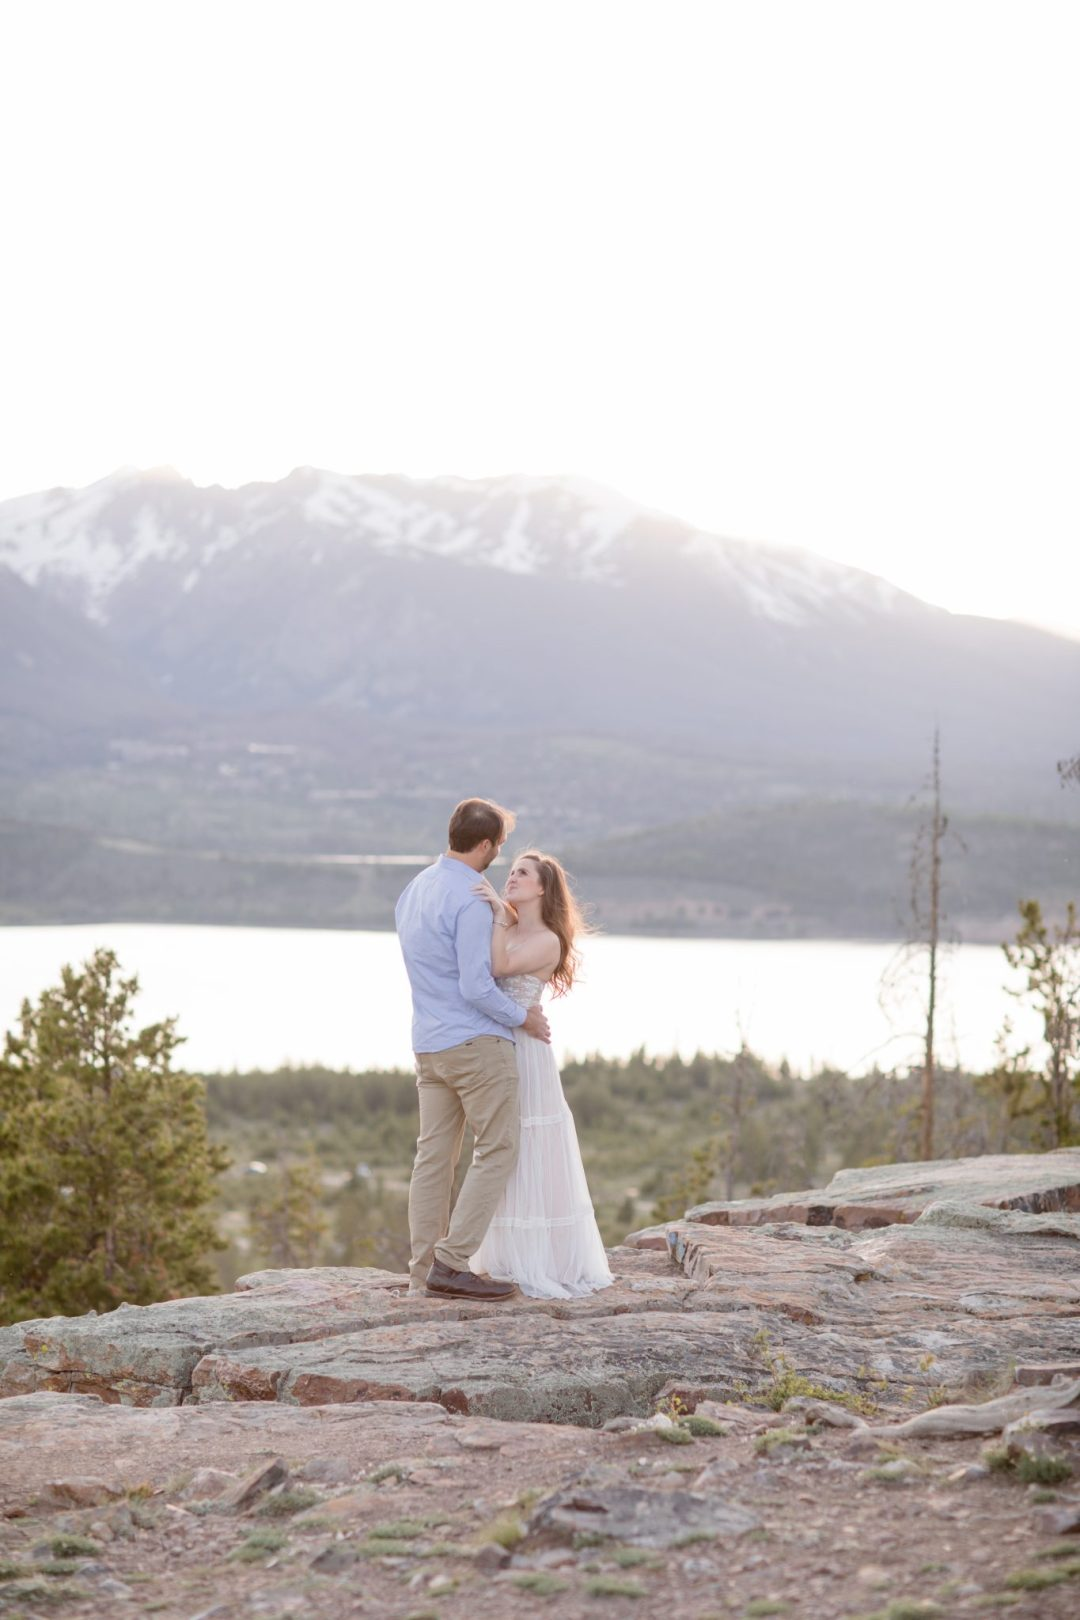 Buffalo Mountain in the backdrop of this proposal in Breckenridge